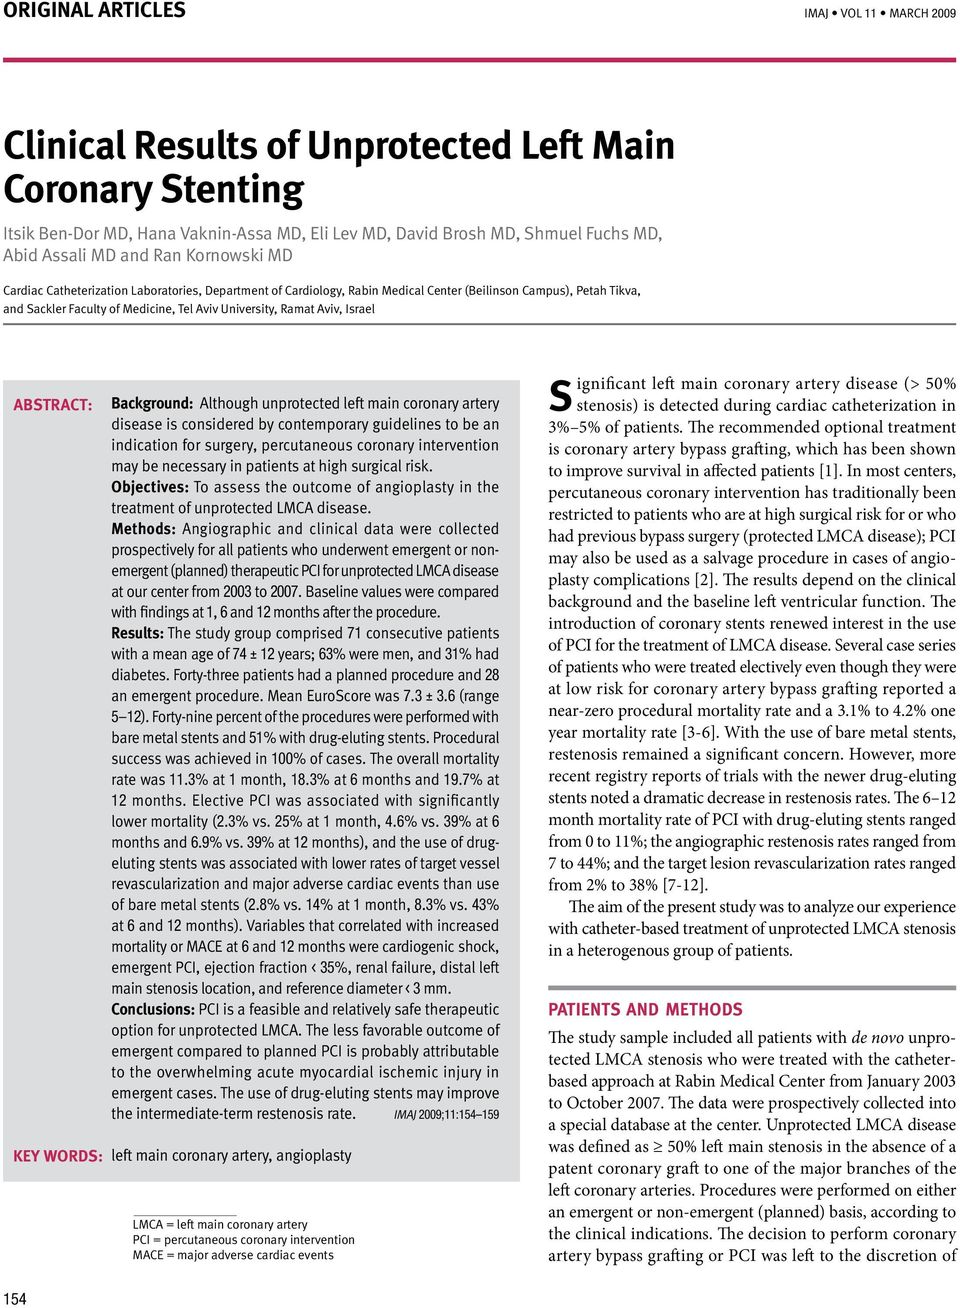 Aviv, Israel Abstract: Key words: Background: Although unprotected left main coronary artery disease is considered by contemporary guidelines to be an indication for surgery, percutaneous coronary